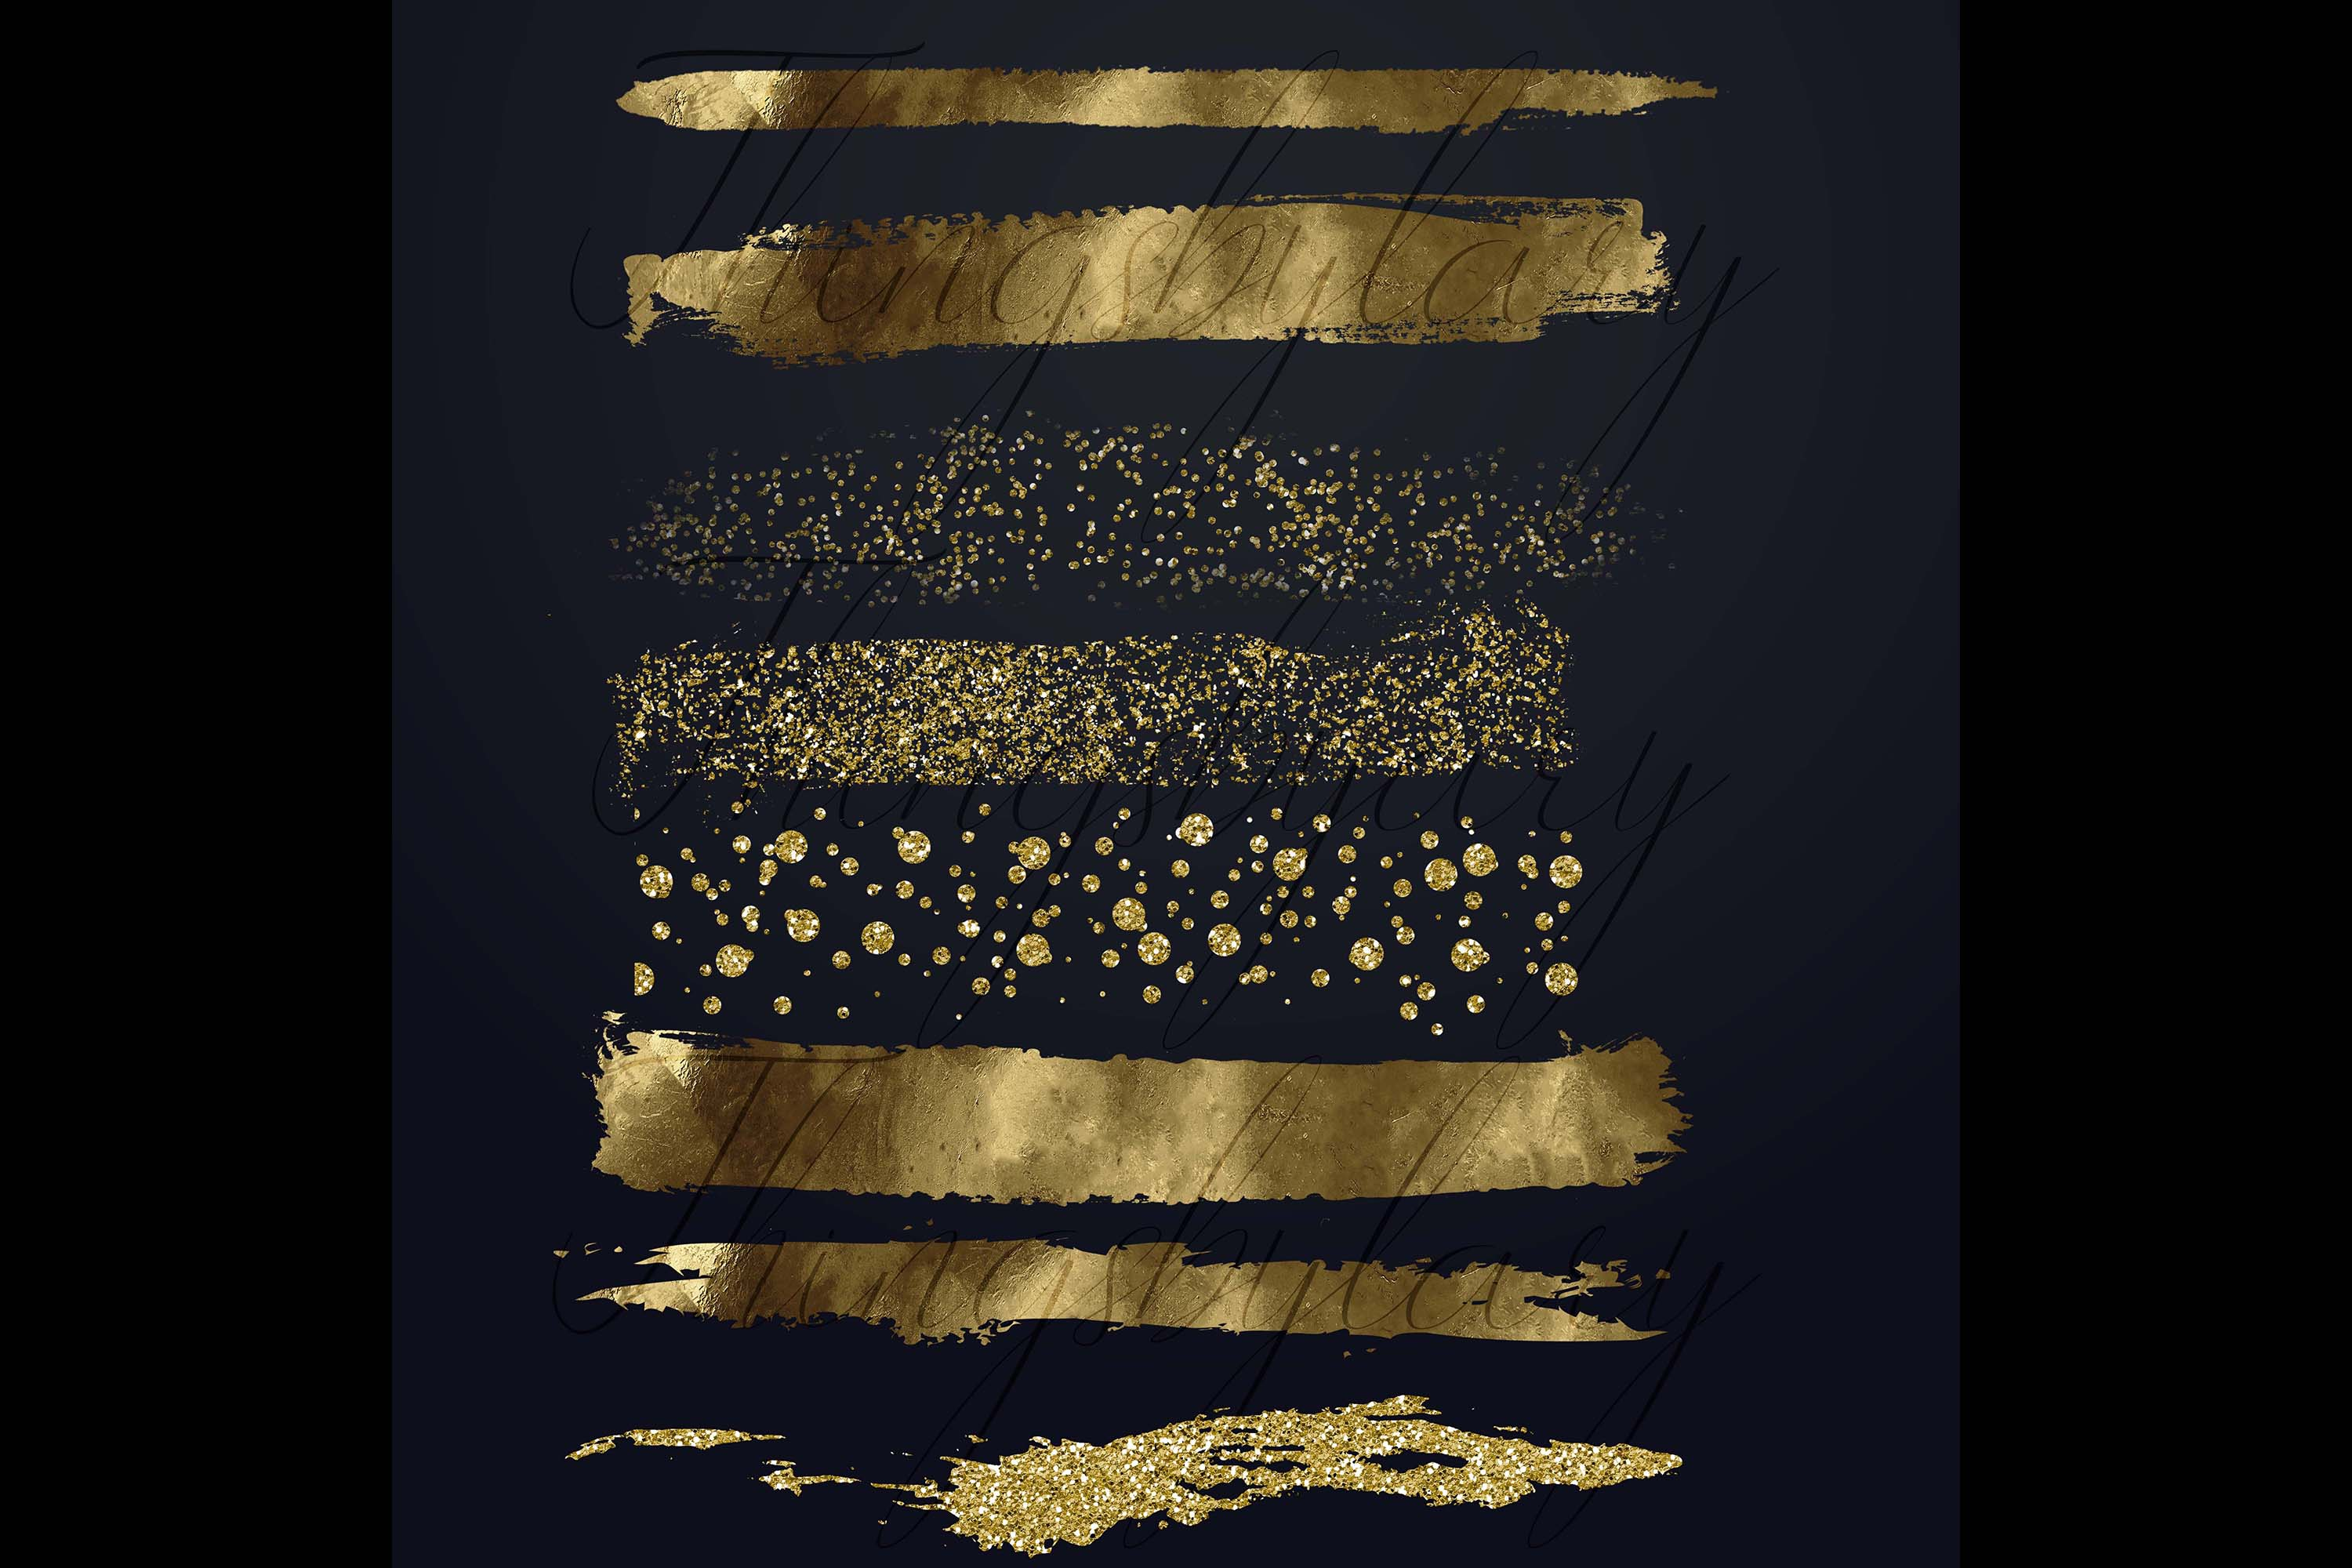 33 Gold Glitter and Black Hand Drawn Brush Strokes Images example image 10